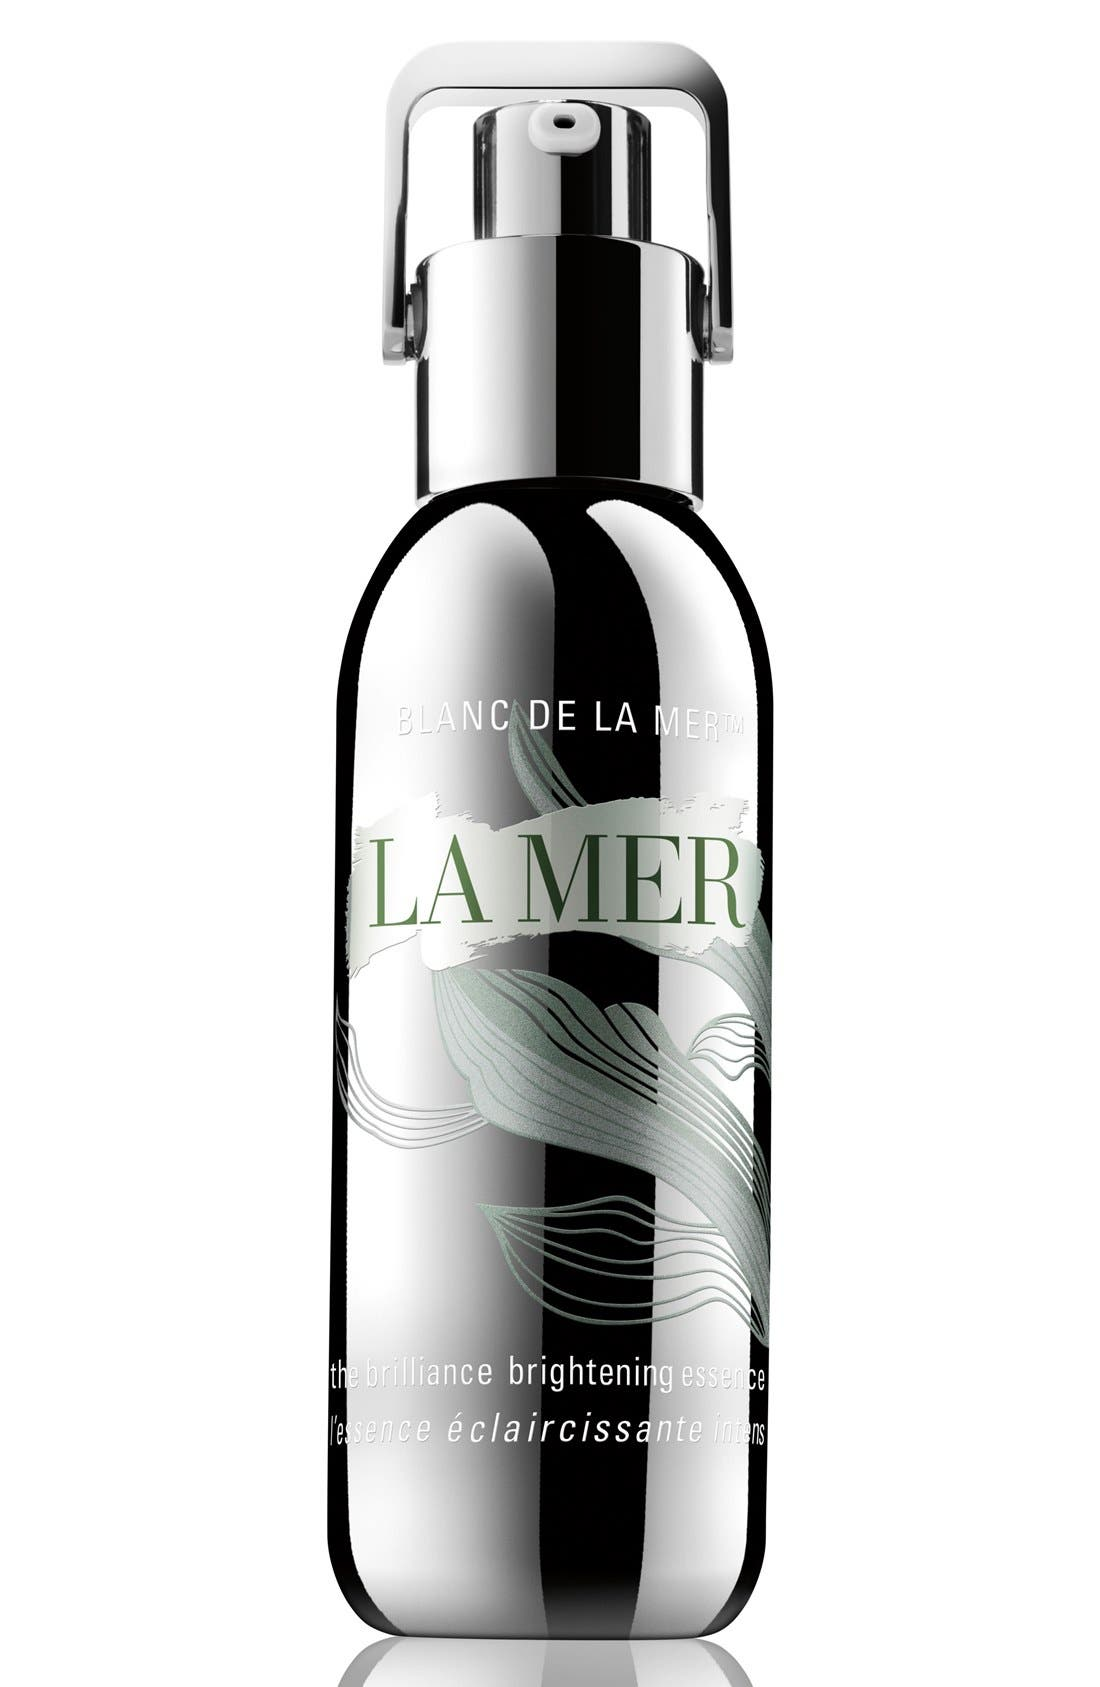 La Mer The Brilliance Brightening Essence Serum